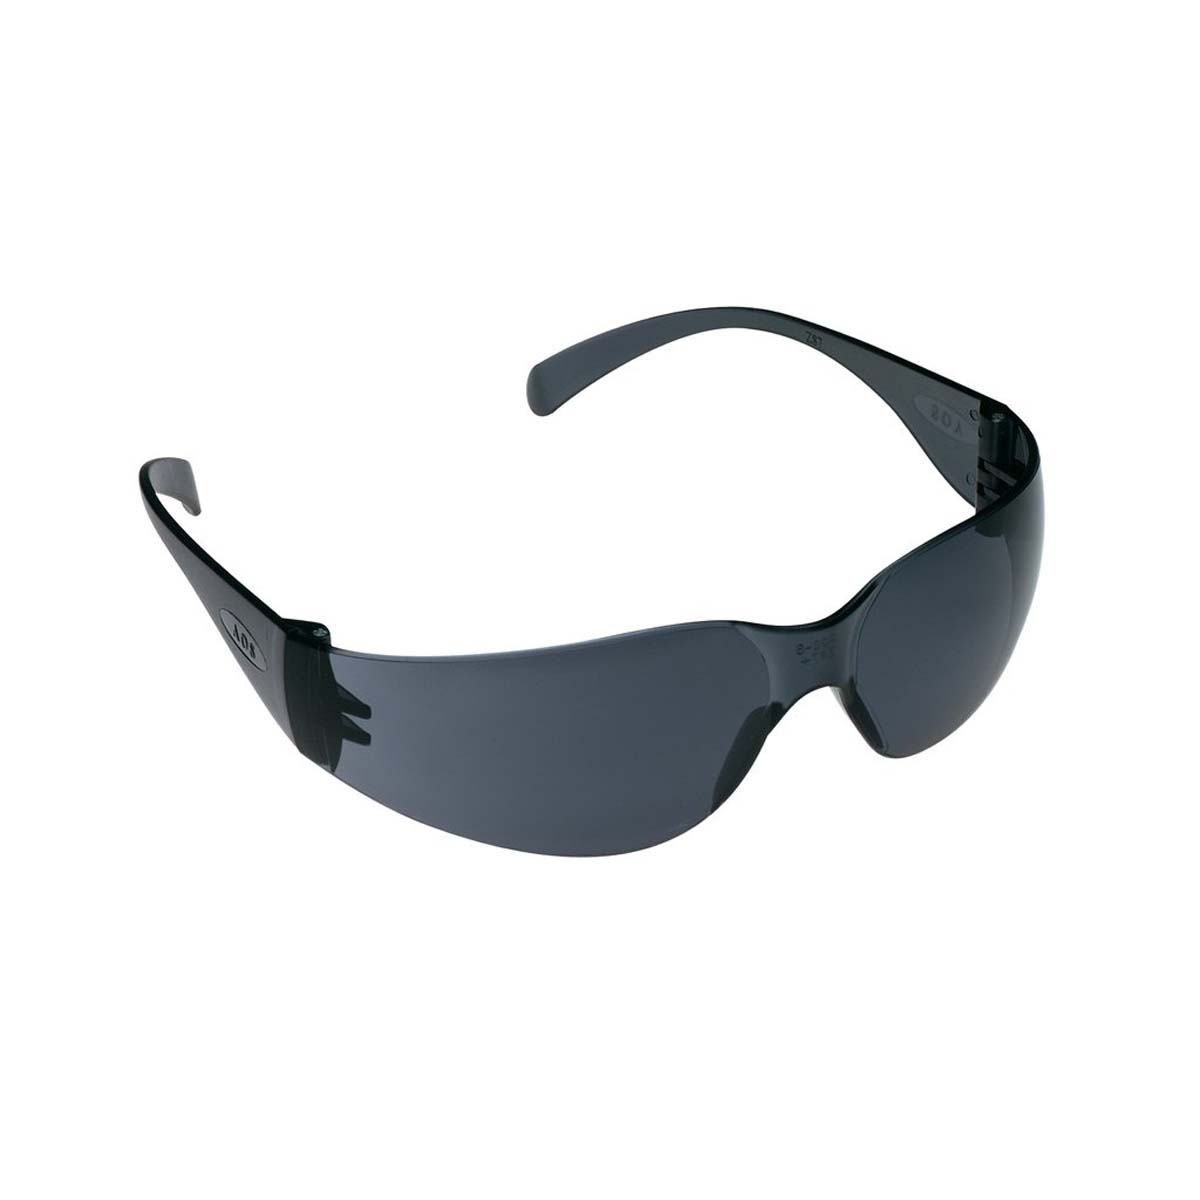 "3Mâ""¢ Virtuaâ""¢ Protective Eyewear 11330-00000-20 Gray Anti-Fog Lens, Gray Temple"